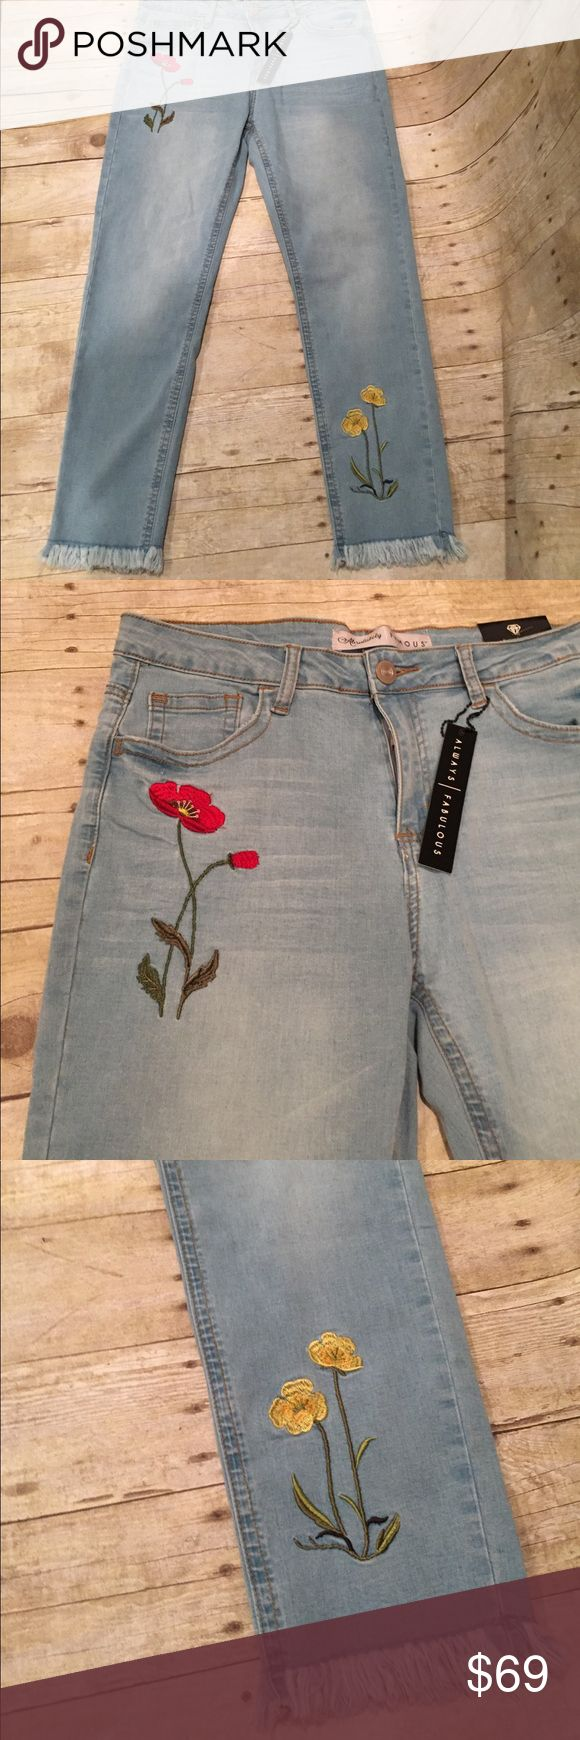 Absolutely adorable flowered tattered jeans NWT 12 Adorable light denim jeans size 12. NWT worn to the ankle Jeans Ankle & Cropped